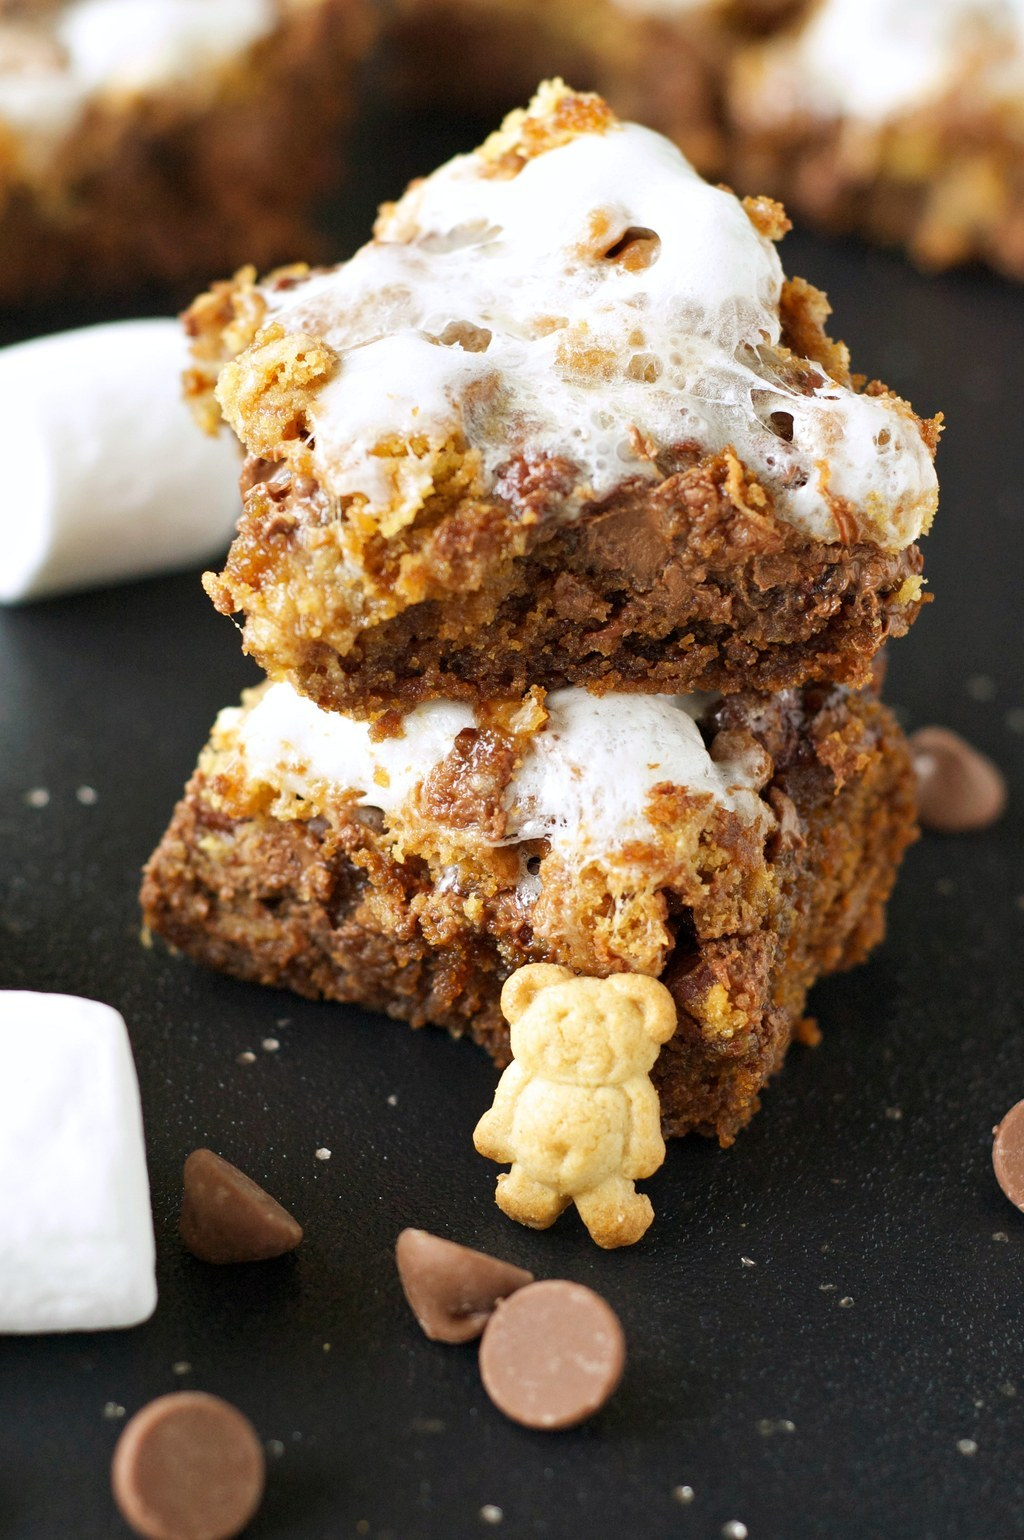 23 Slow Cooker Desserts You Need To Make This Winter